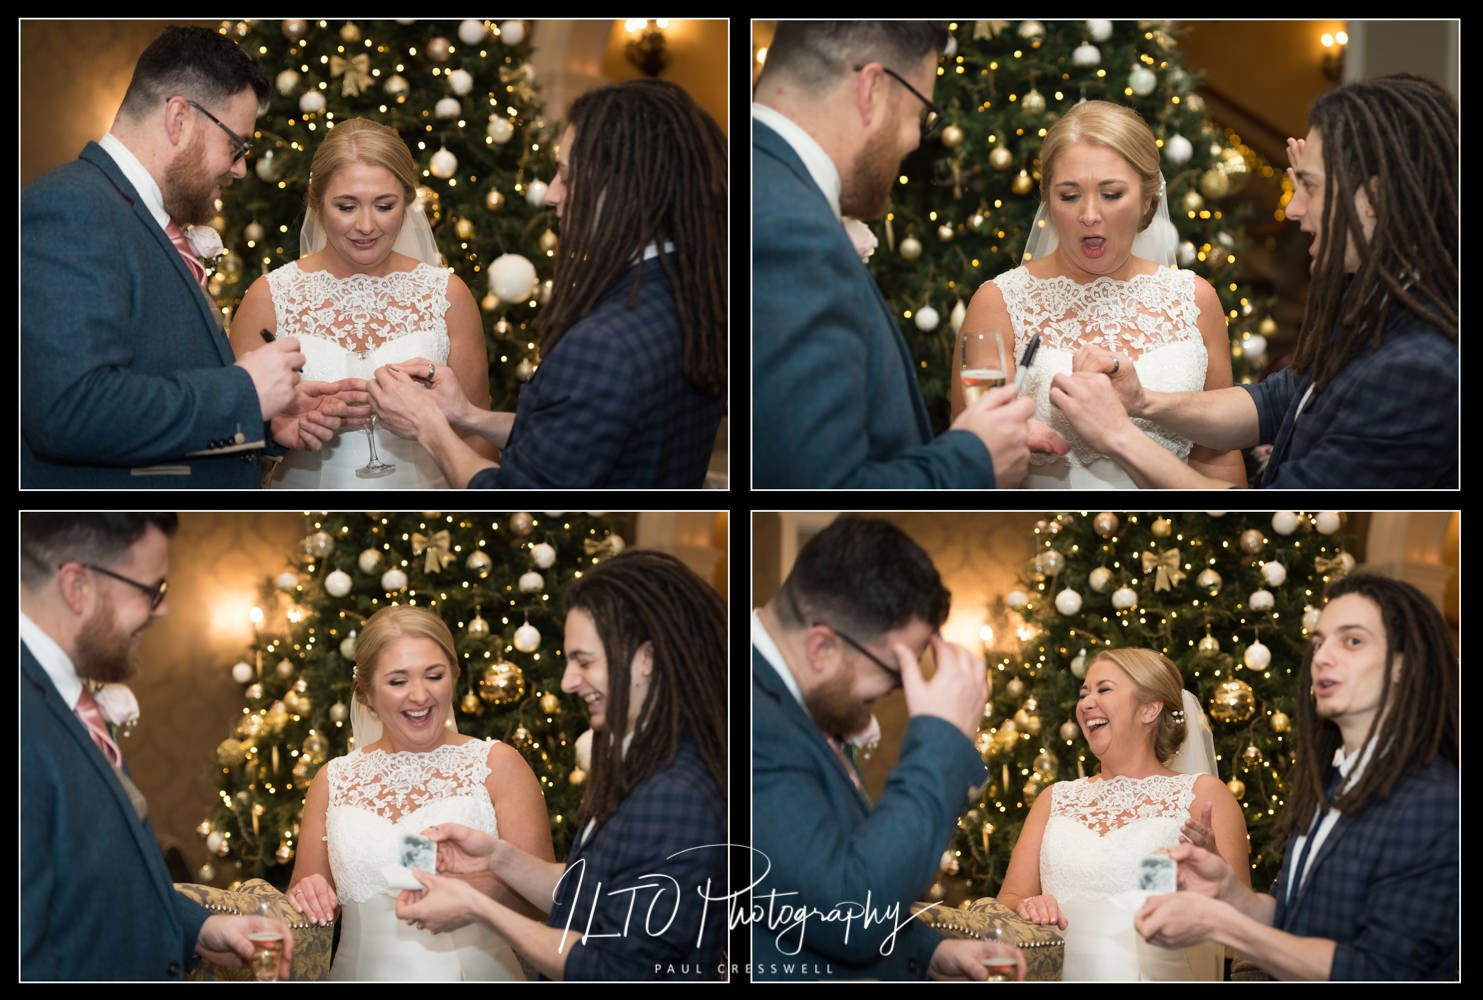 Oliver twist parker magician, pluton hall wedding, ILTO Photography